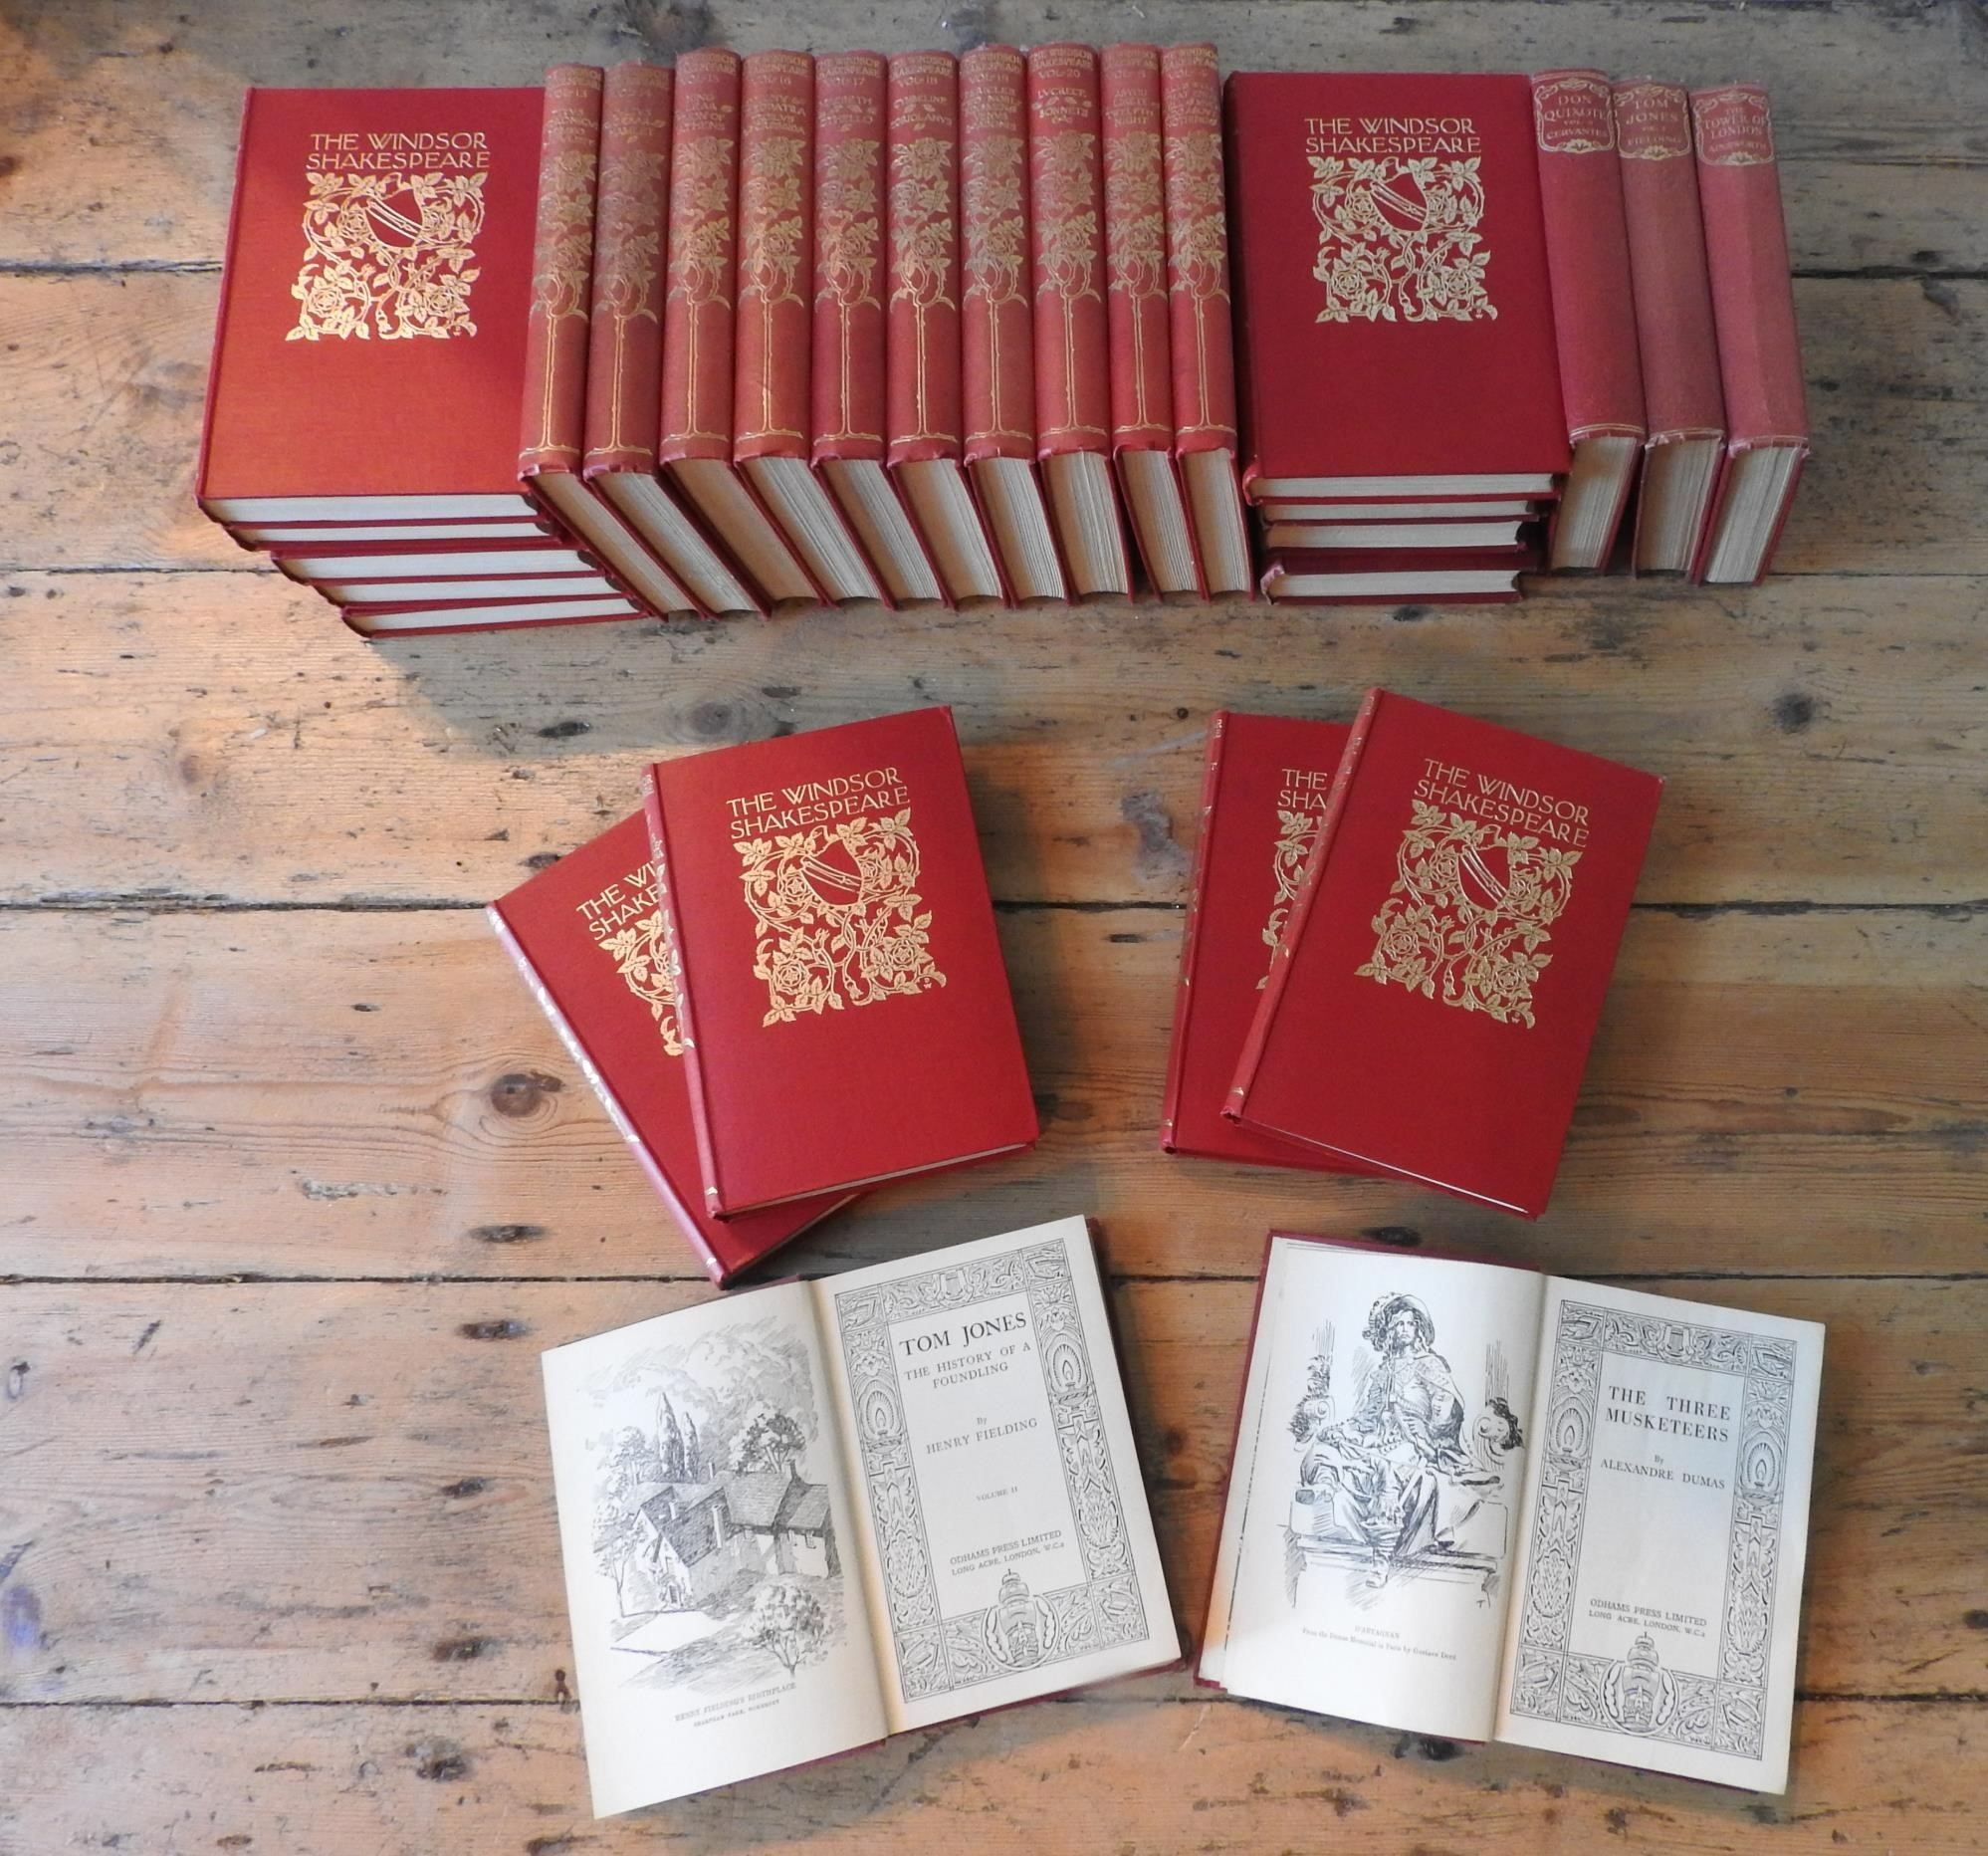 20 VOLS OF 'THE WINDSOR SHAKESPEARE' AND 27 VOLS OF CLASSIC LITERATURE COLLECTIONS